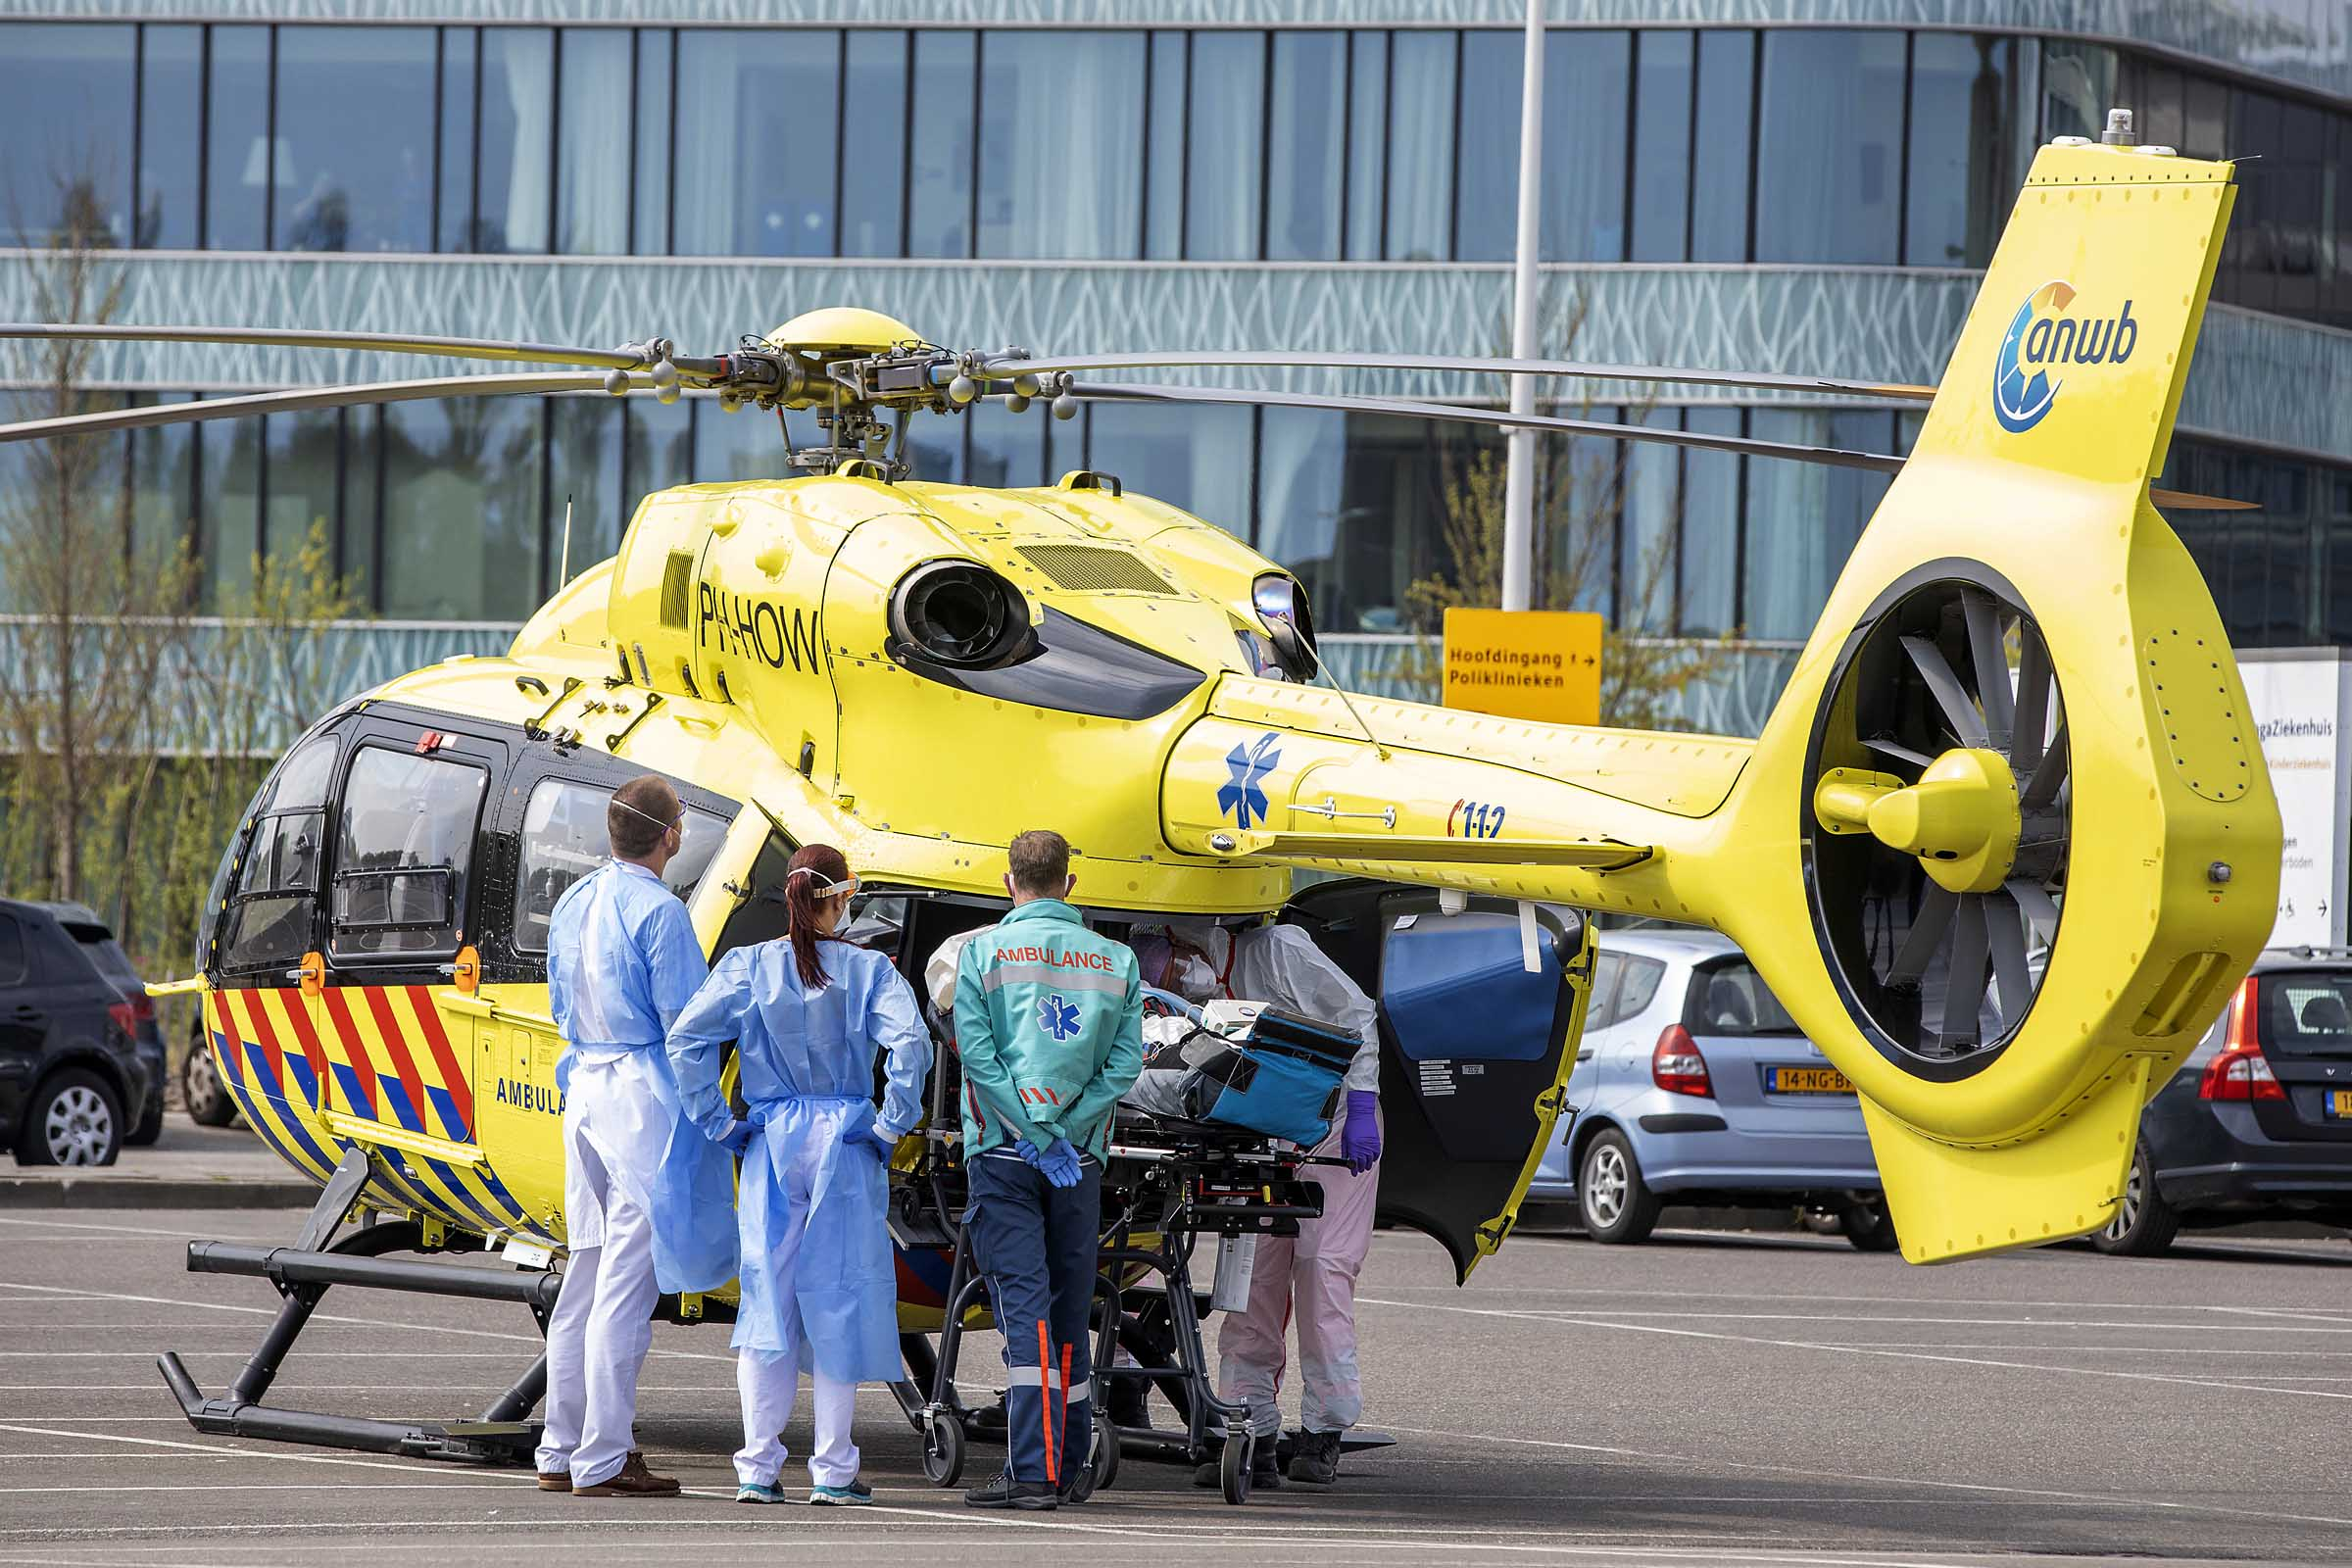 Medical workers are seen alongside a trauma helicopter as they transport a coronavirus patient on April 12 in Den Haag, Netherlands.